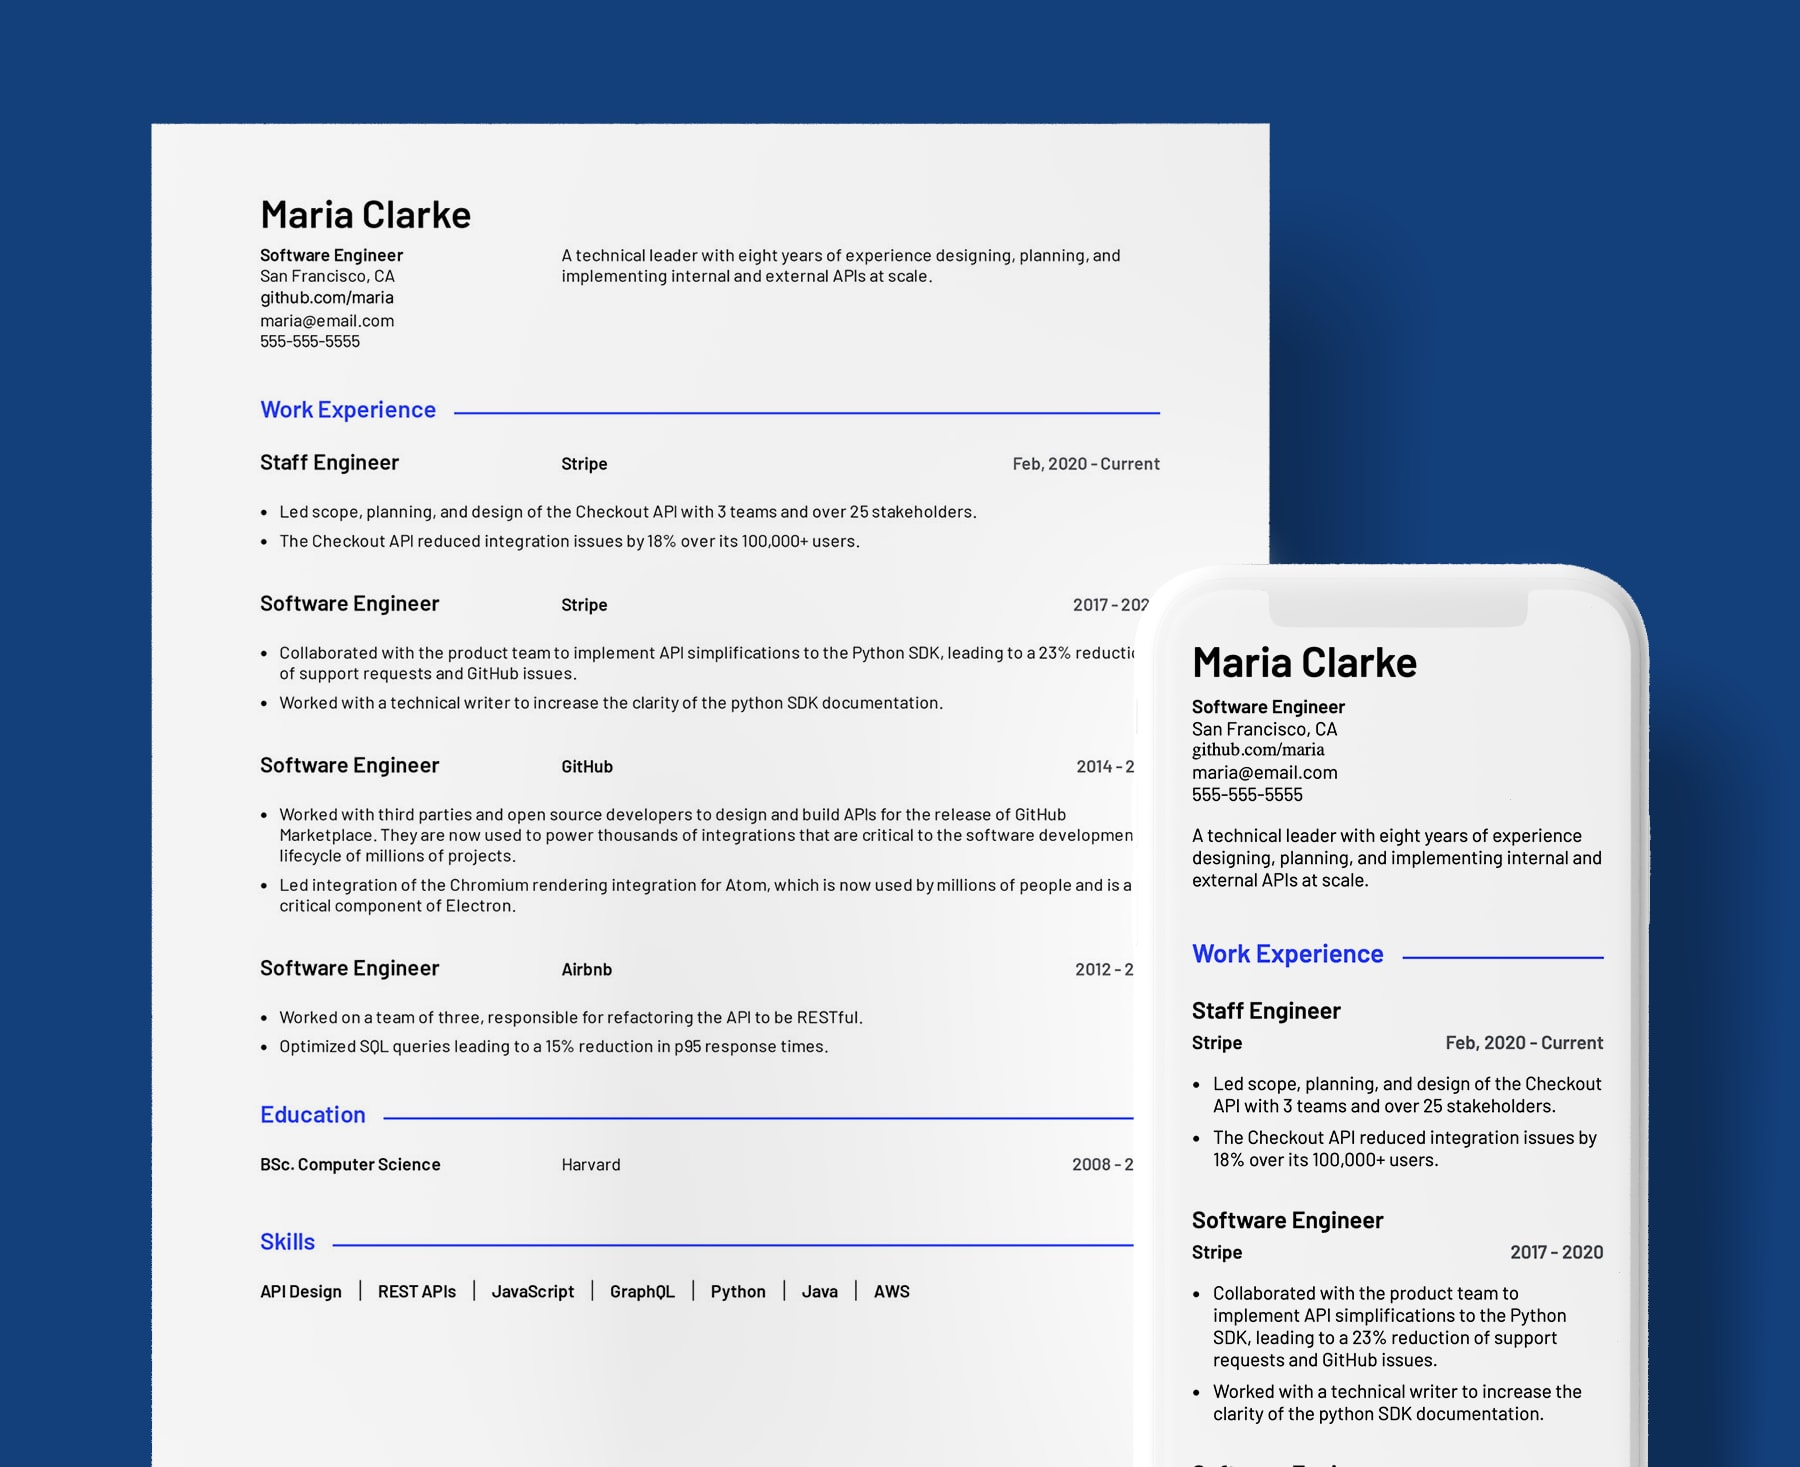 Parker basic resume template for Software Engineers. Shown in web and PDF format.